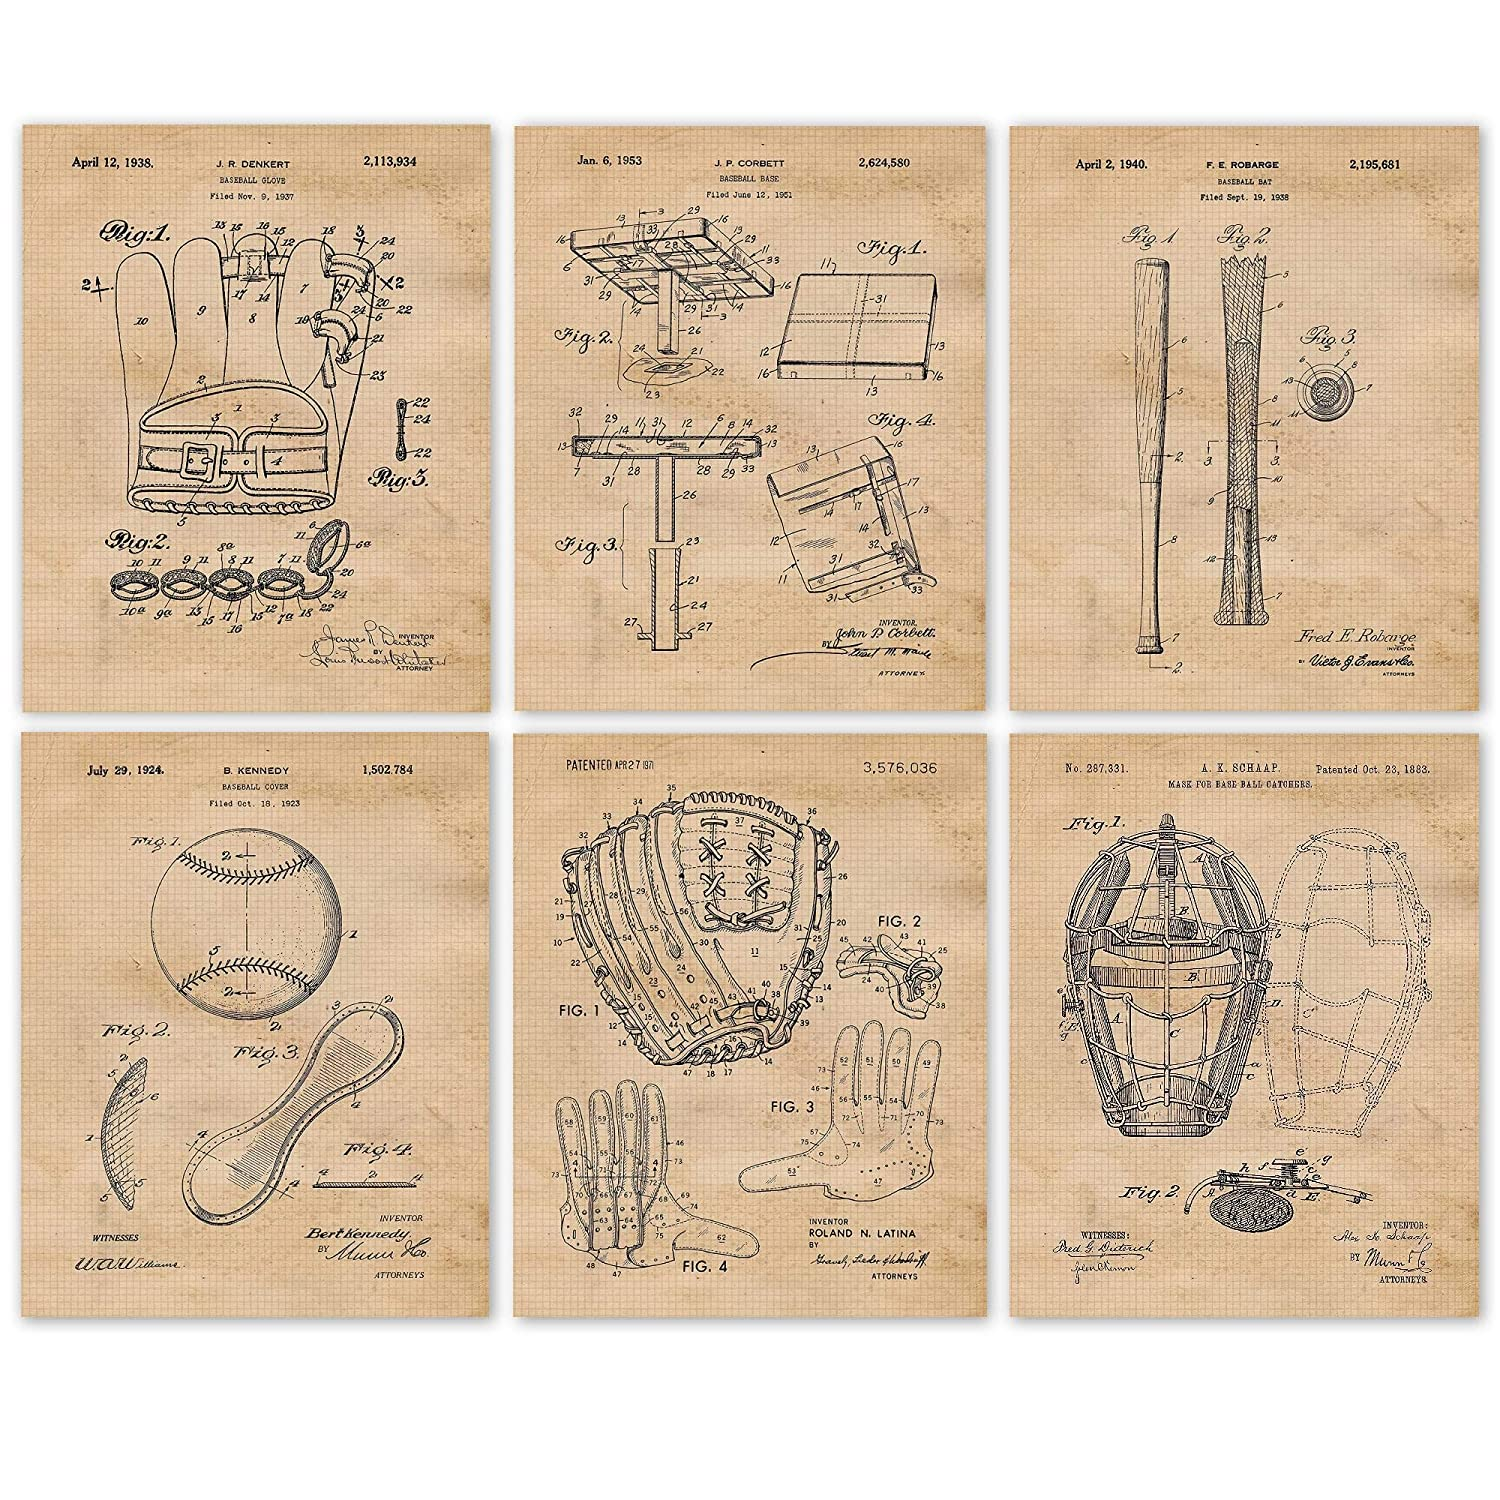 Vintage Baseball Patent Poster Prints, Set of 6 (8x10) Unframed Photos, Great Wall Art Decor Gifts Under 20 for Home, Office, Garage, Gym, College, Man Cave, Student, Teacher, Coach, Sports & MLB Fan